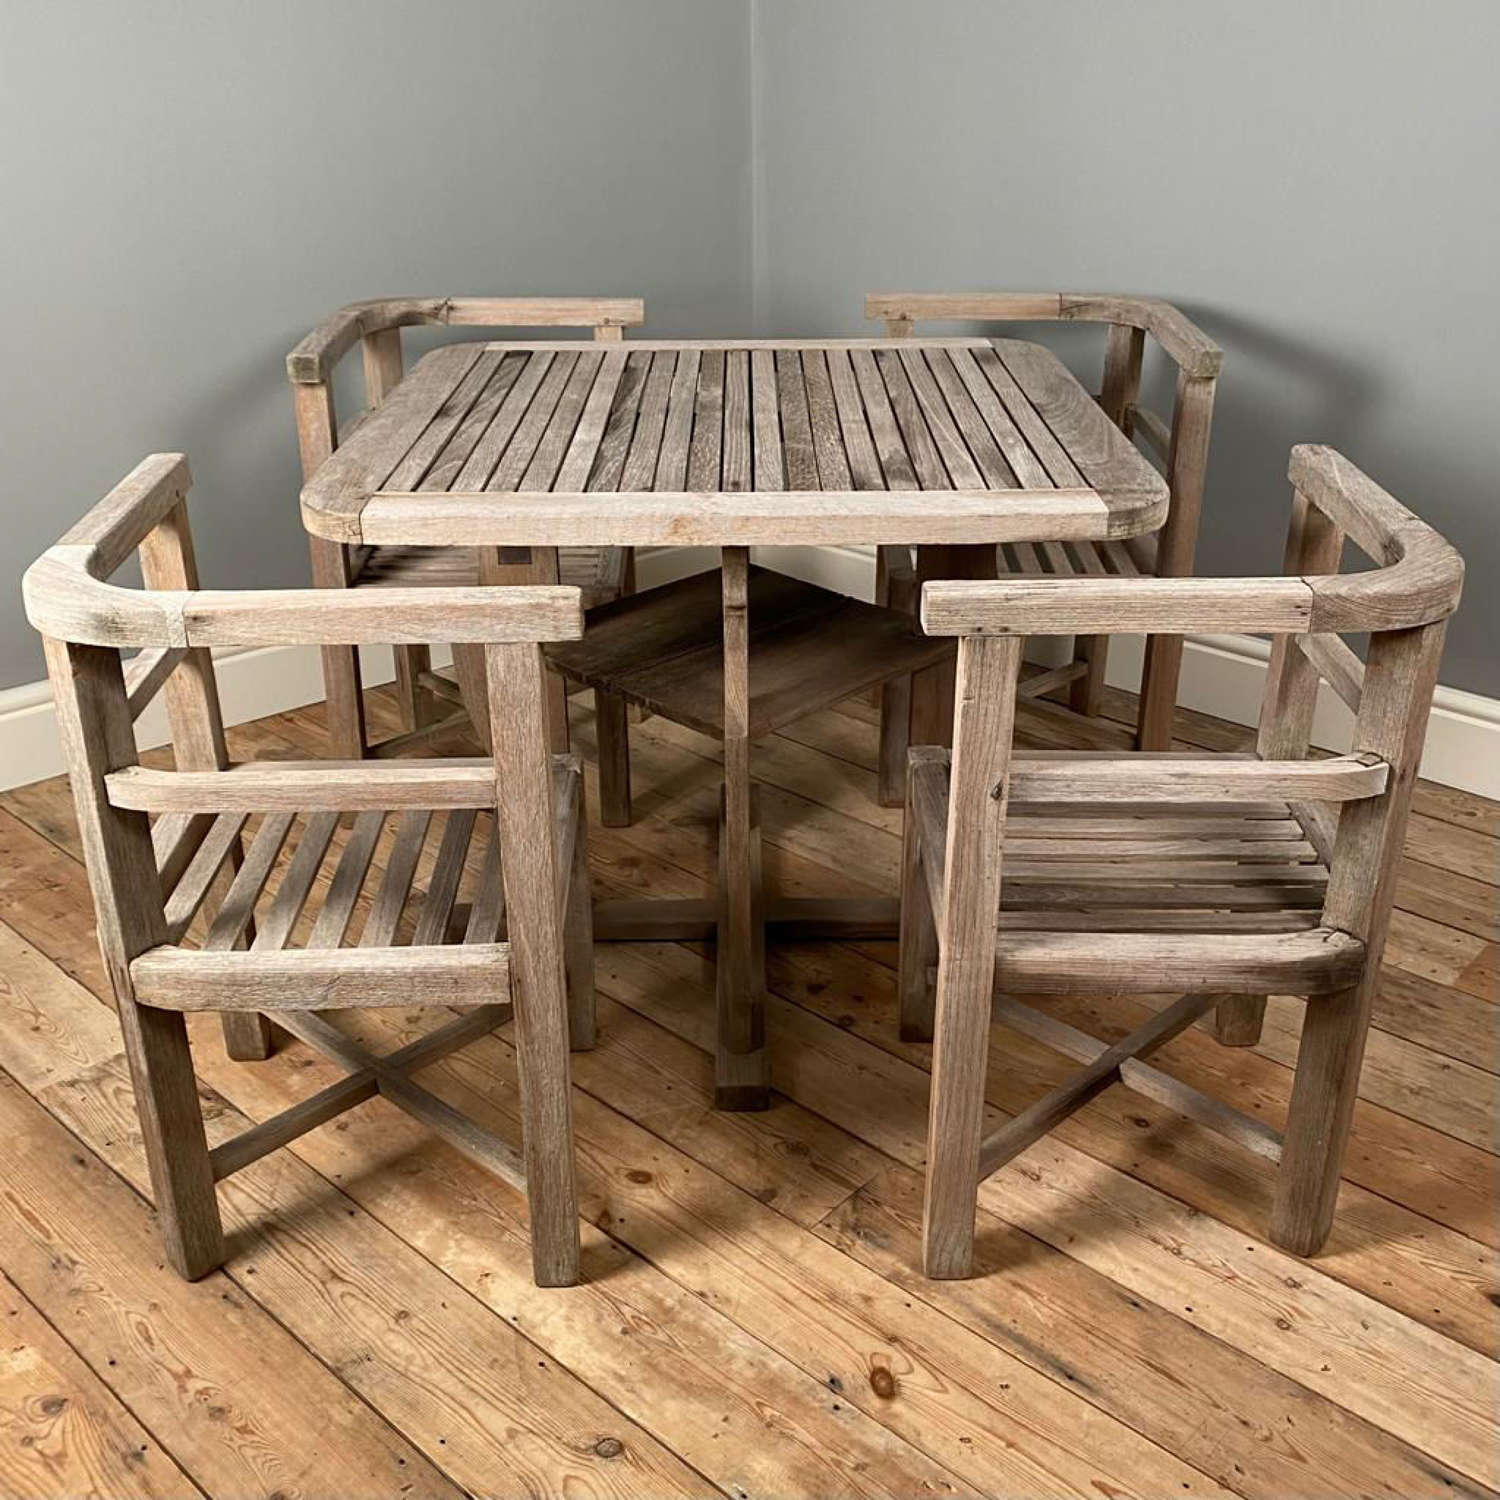 Heals Plus 4 Teak Garden Table and Chairs